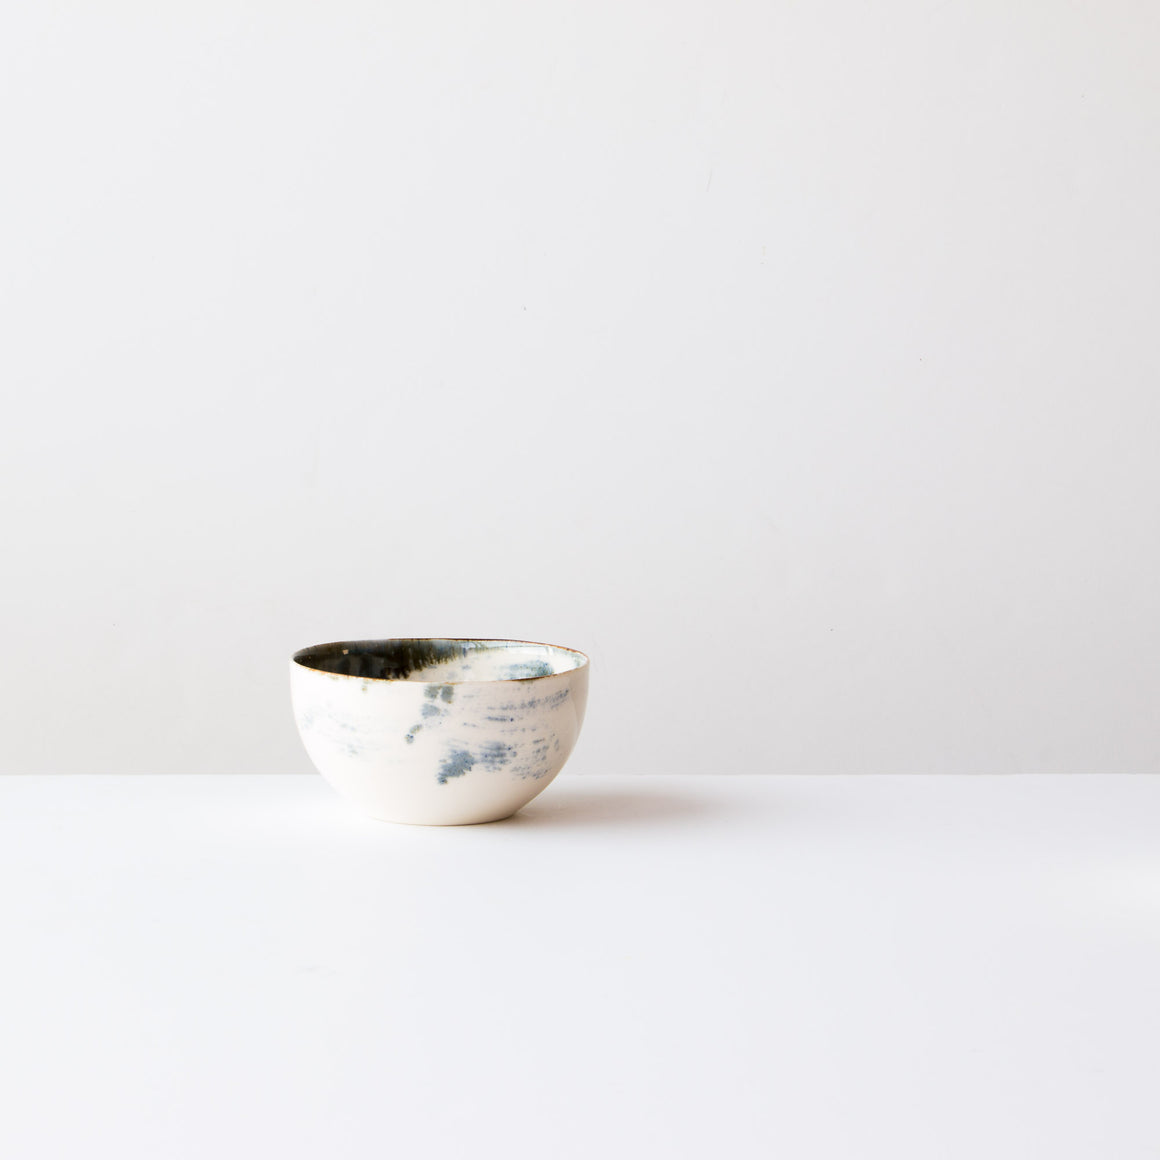 Handmade Porcelain Rice Bowls - Black & White Painted Porcelain - Sold by Chic & Basta